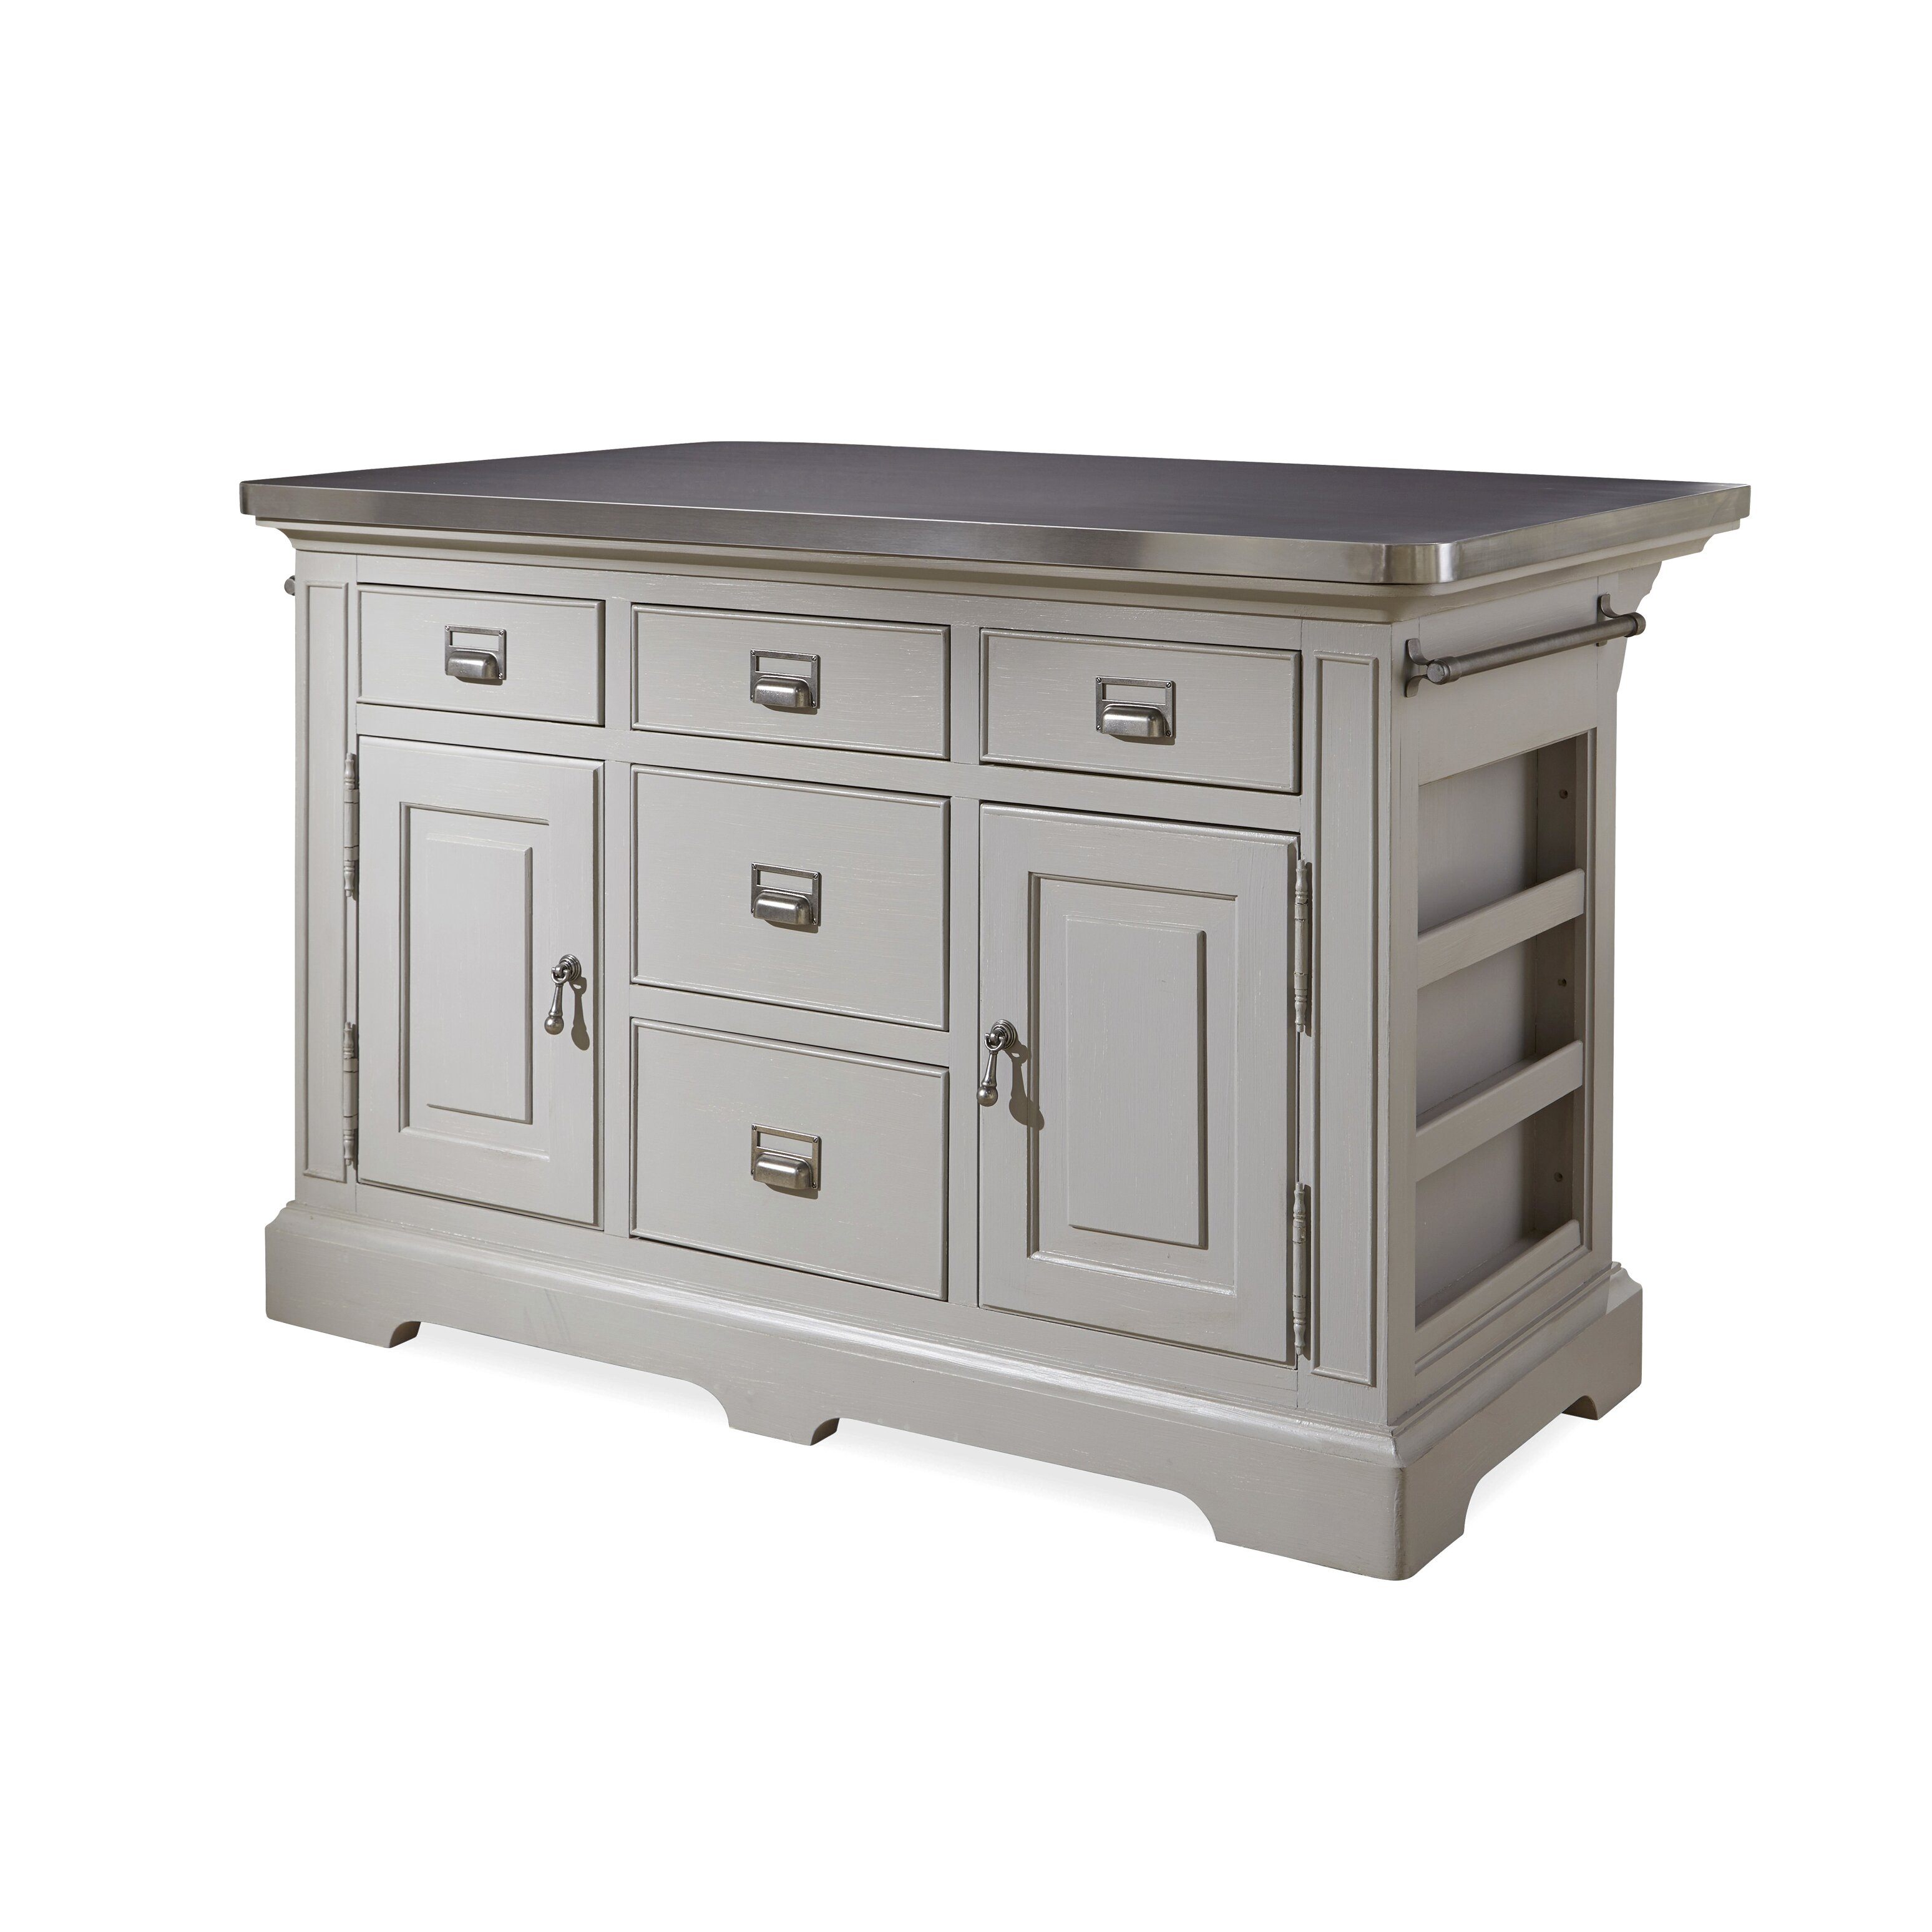 paula deen home dogwood kitchen island with stainless steel